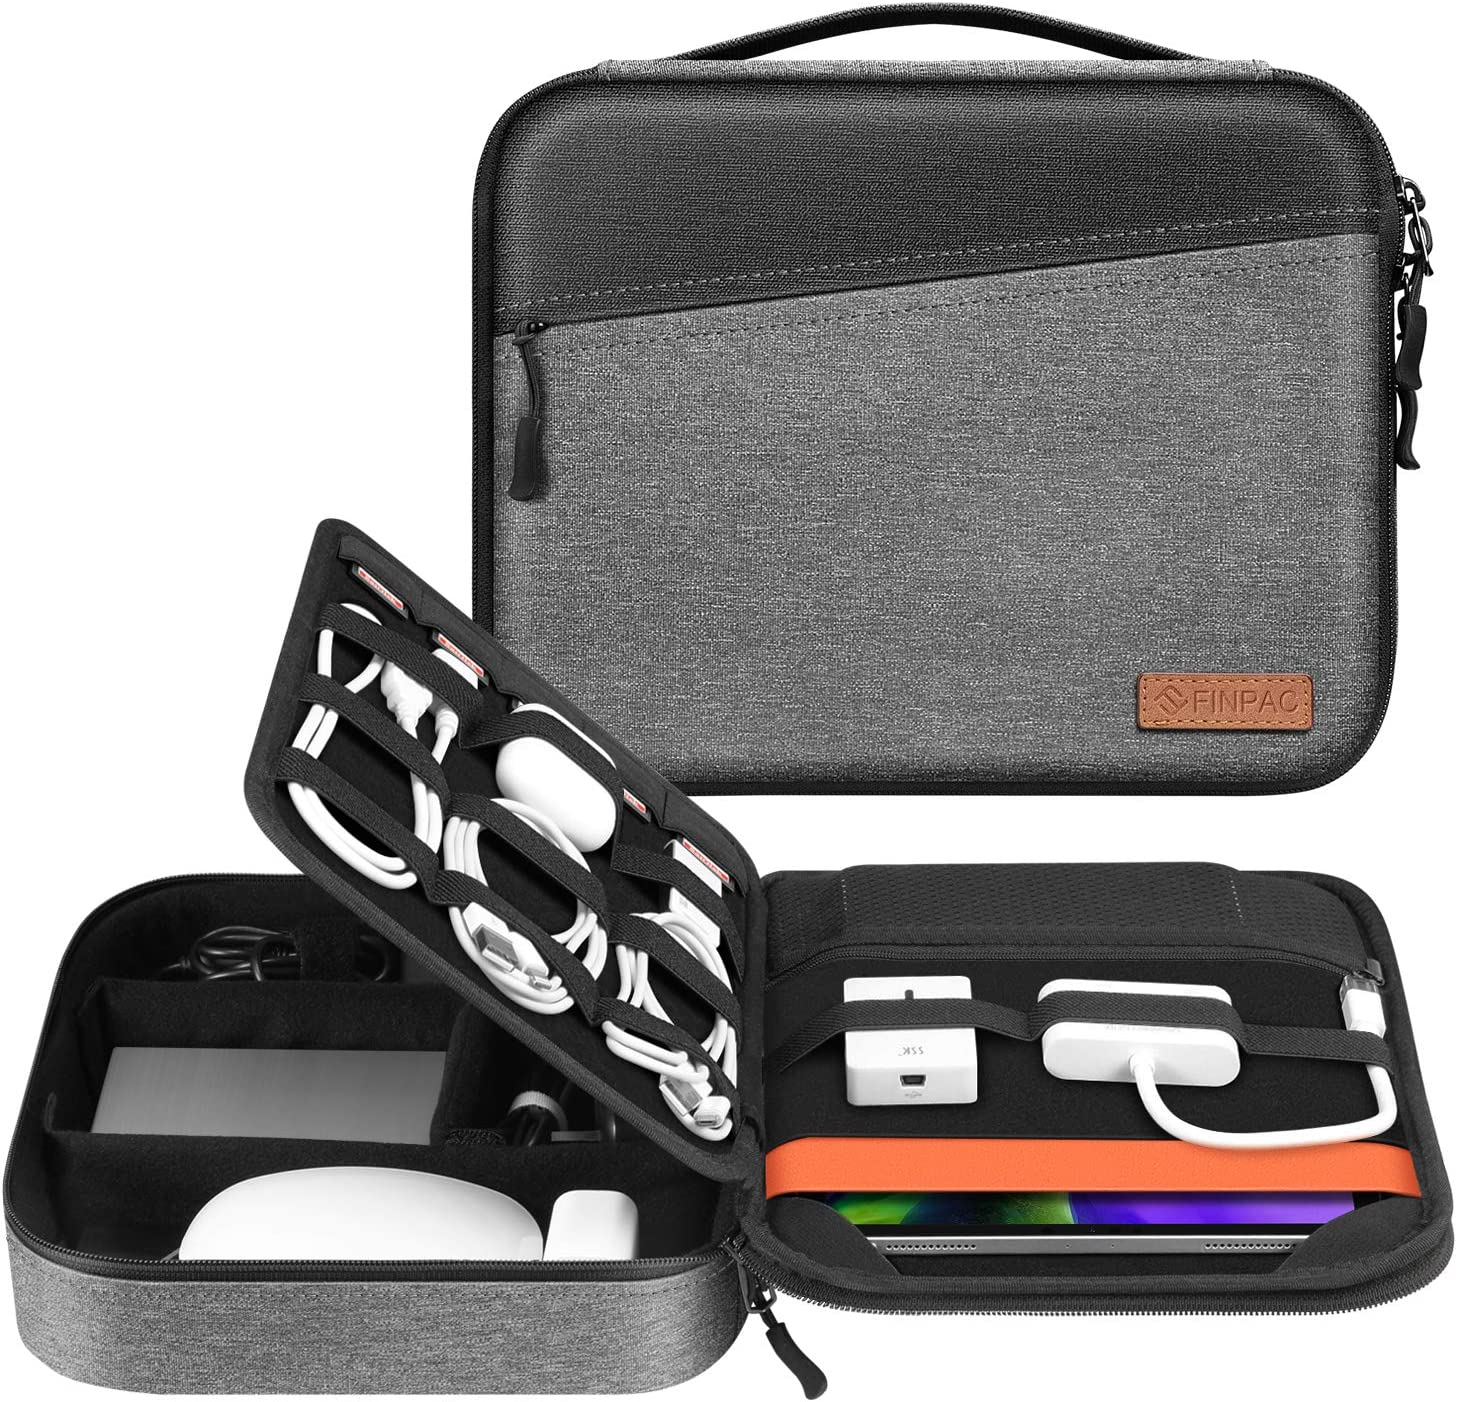 """Electronic Organizer Bag, FINPAC Portable Accessories Storage for Cable/Cord/Charger/Phone/USB/SD Card, Portfolio Tablet Sleeve Carrying Case for iPad Pro 11 in/10.2"""" New iPad/10.5"""" iPad Air/9.7"""" iPad"""